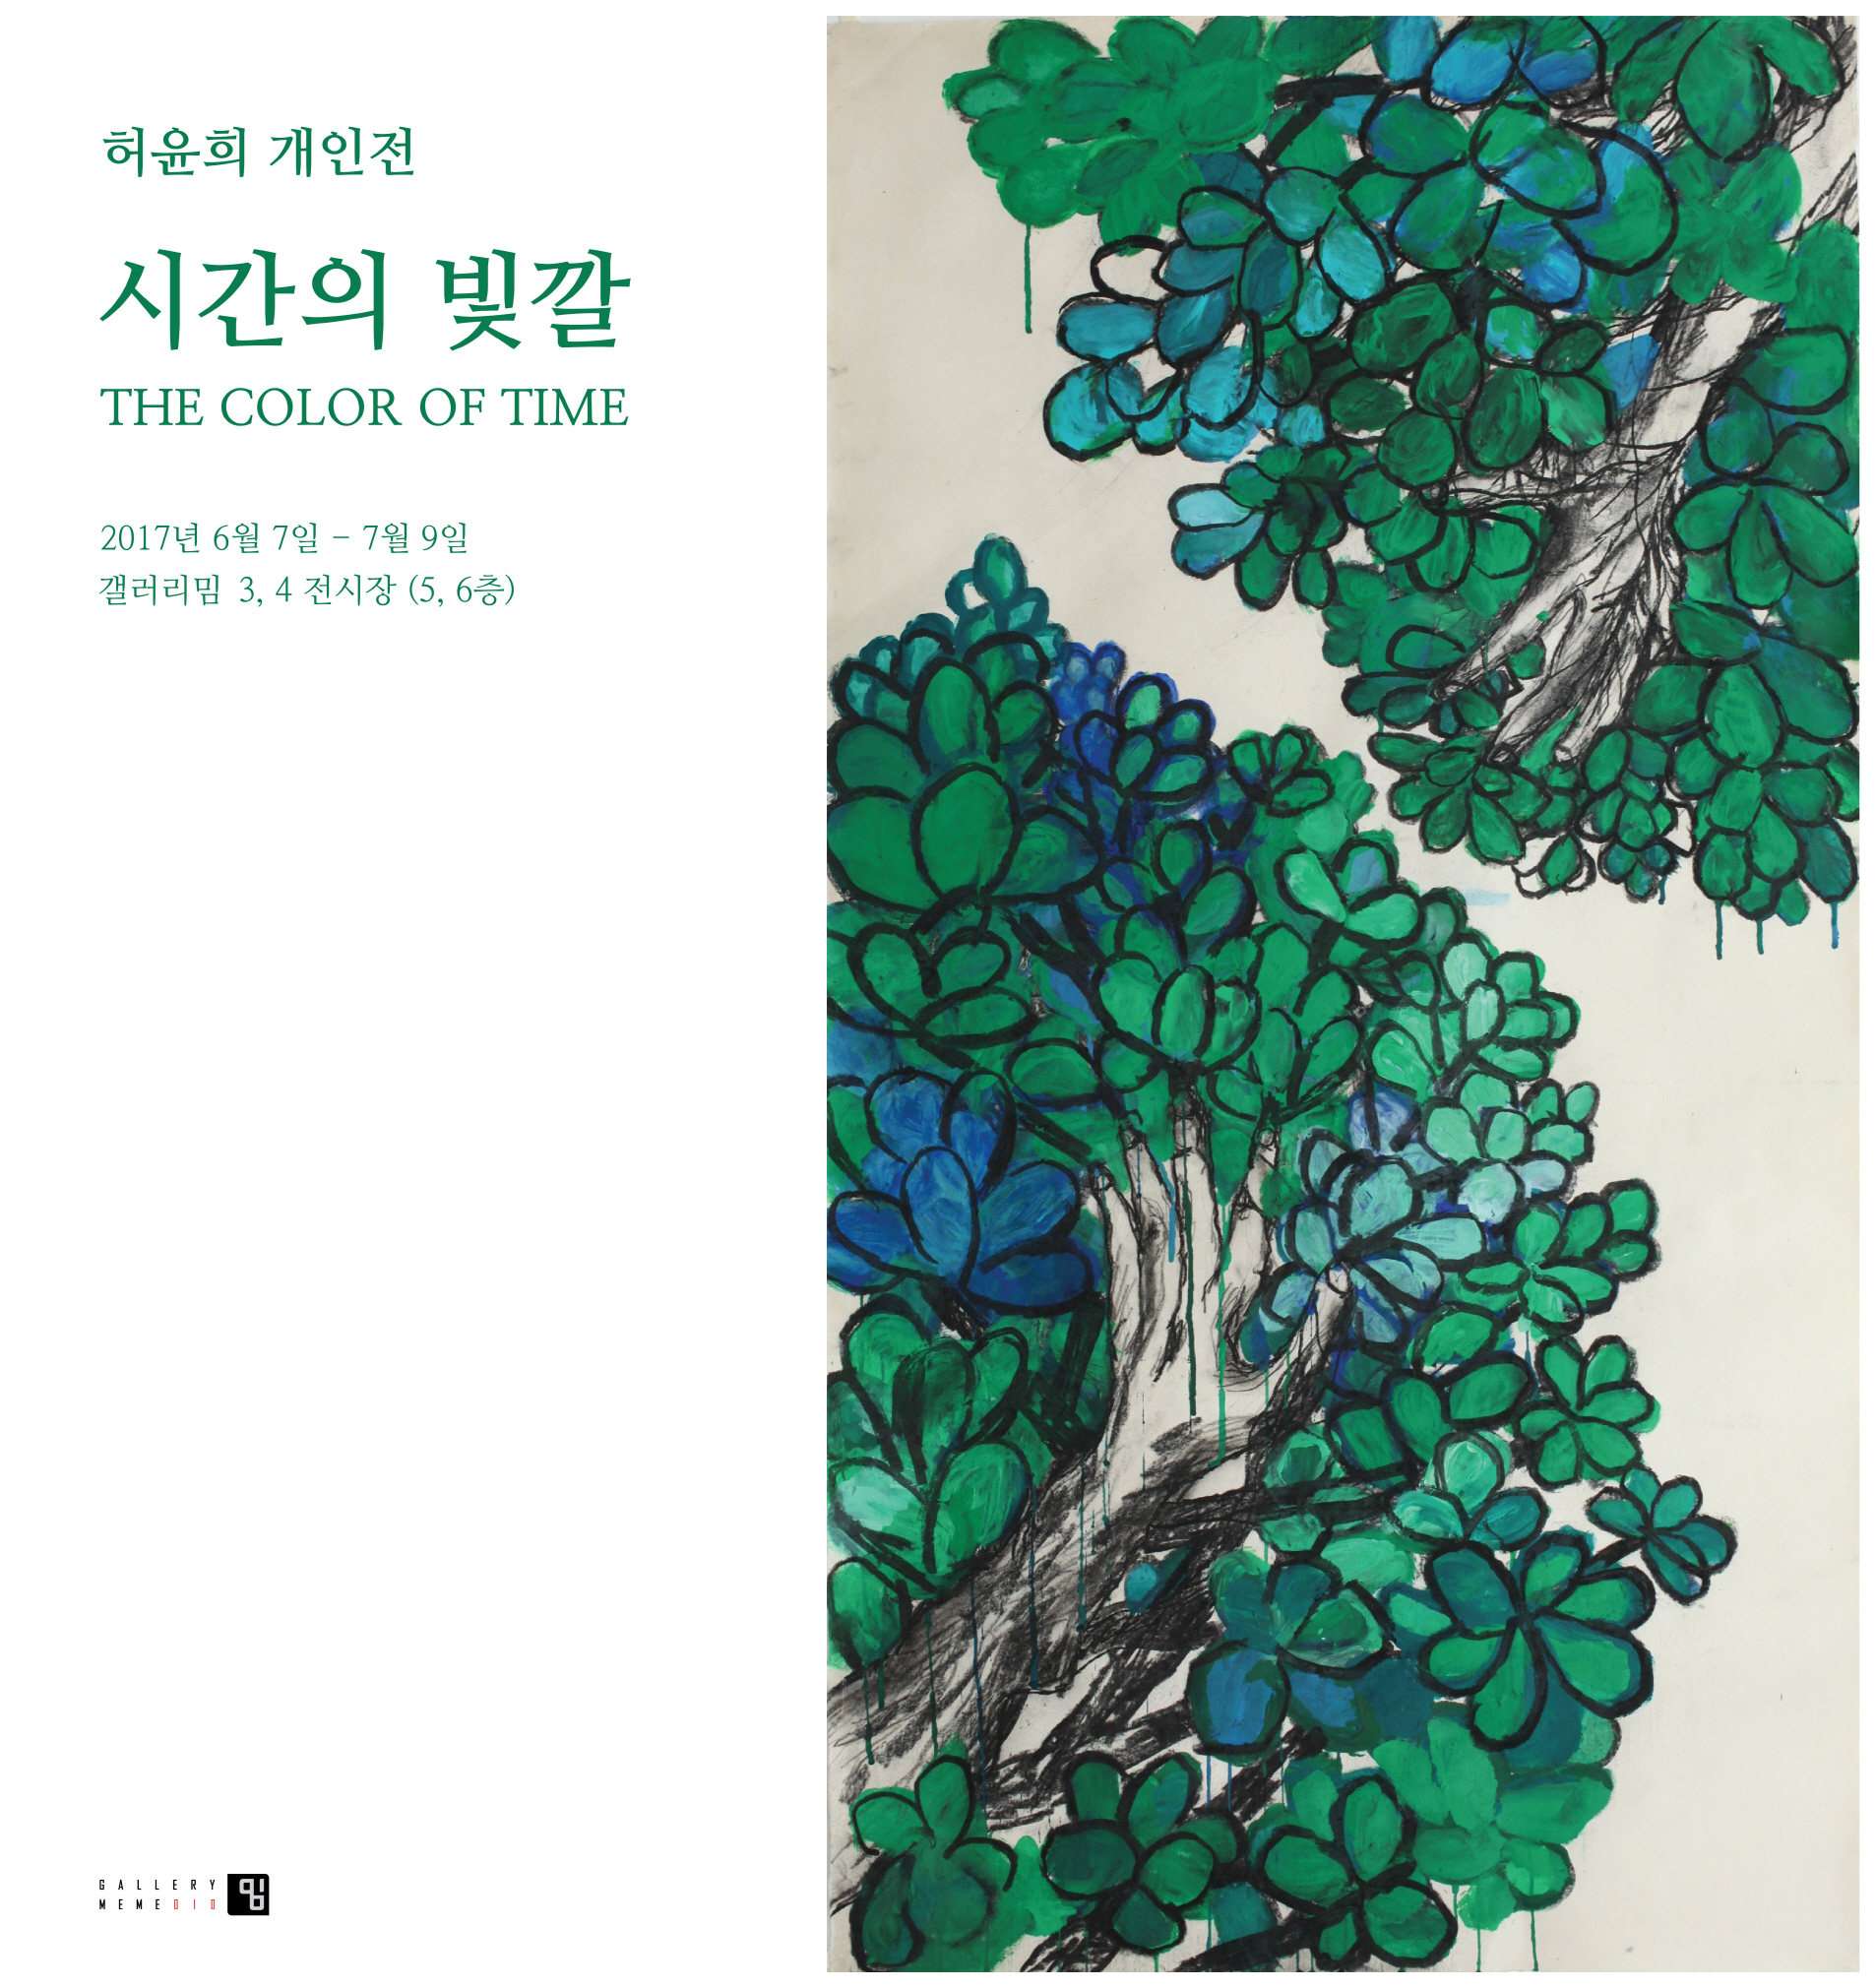 The Color of Time 시간의 빛깔